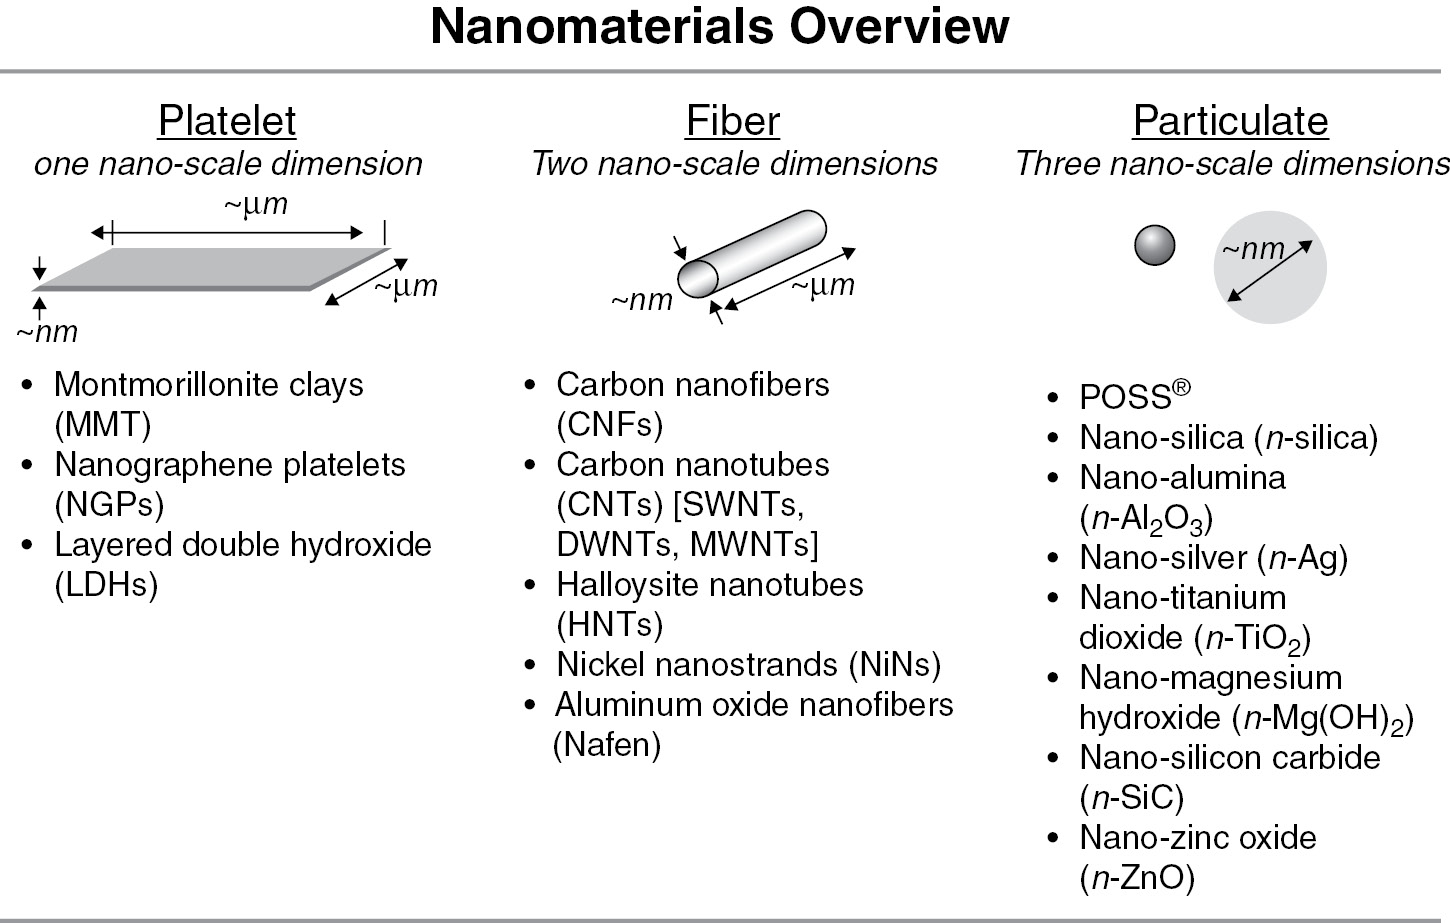 An Overview of Nanomaterials (Chapter 2) - Fundamentals